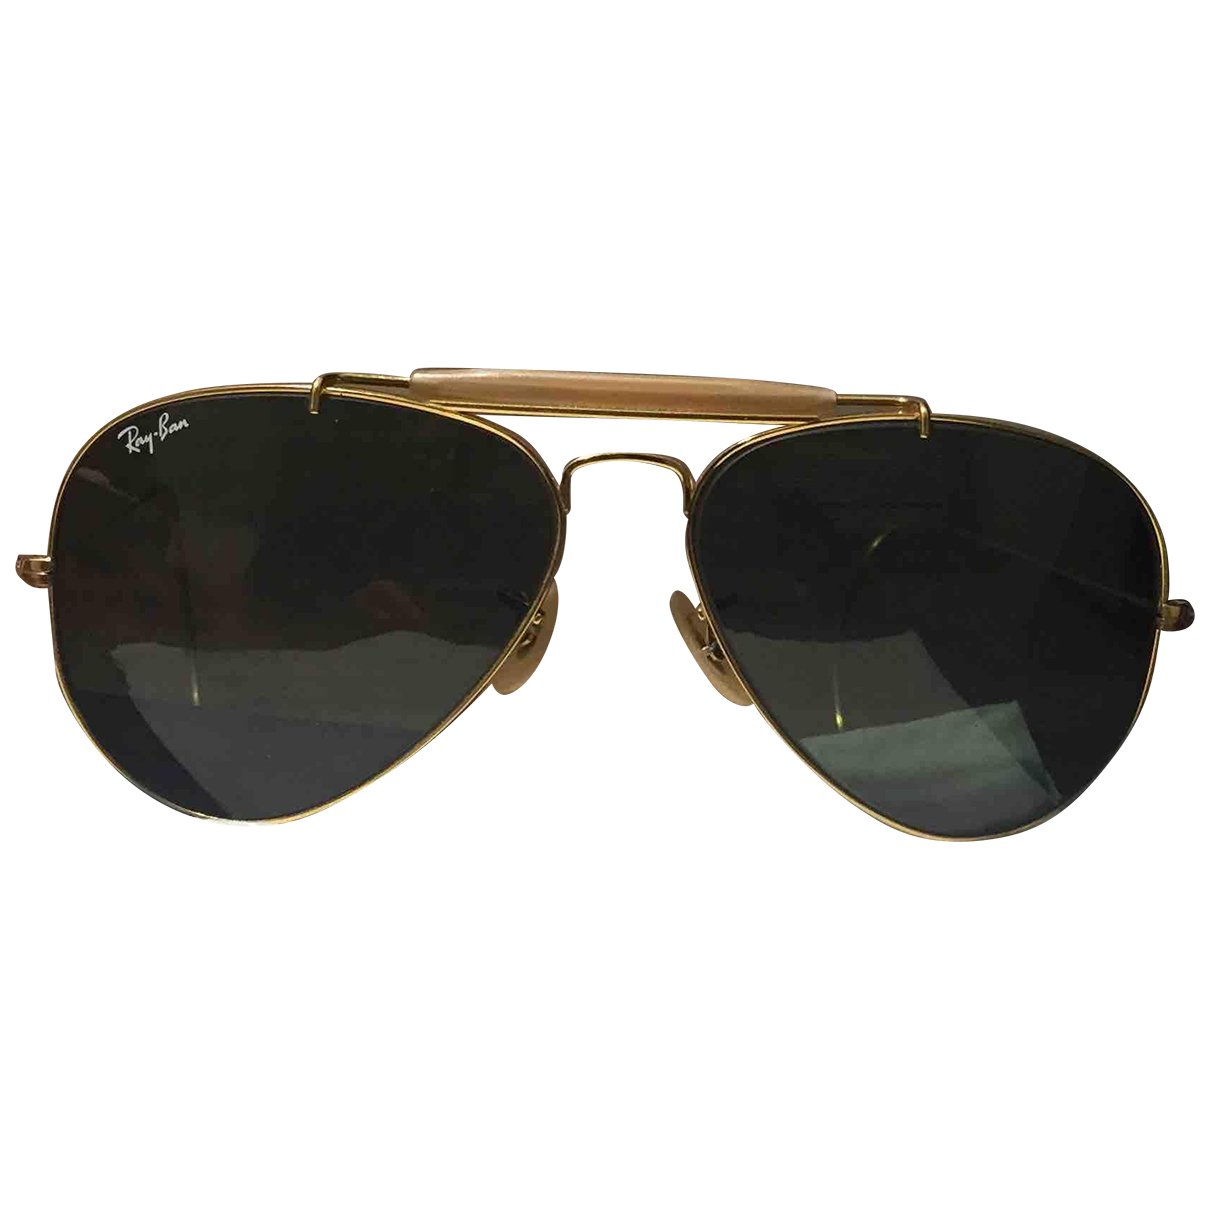 Ray-ban Aviator Green Metal Sunglasses for Women N